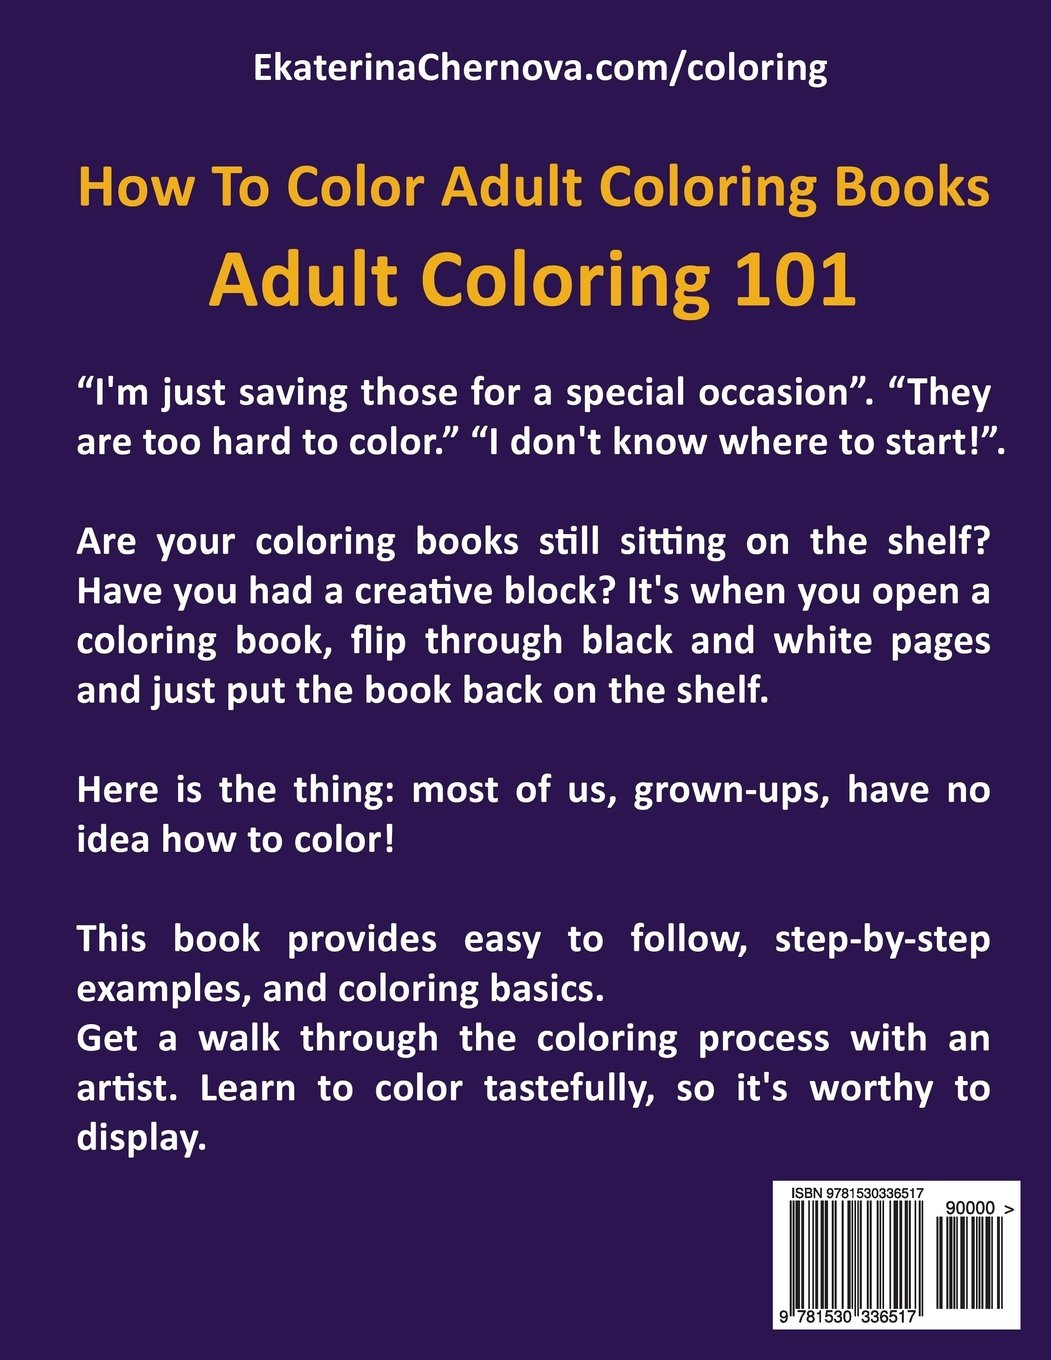 How To Color Adult Coloring Books - Adult Coloring 101: Learn Easy ...